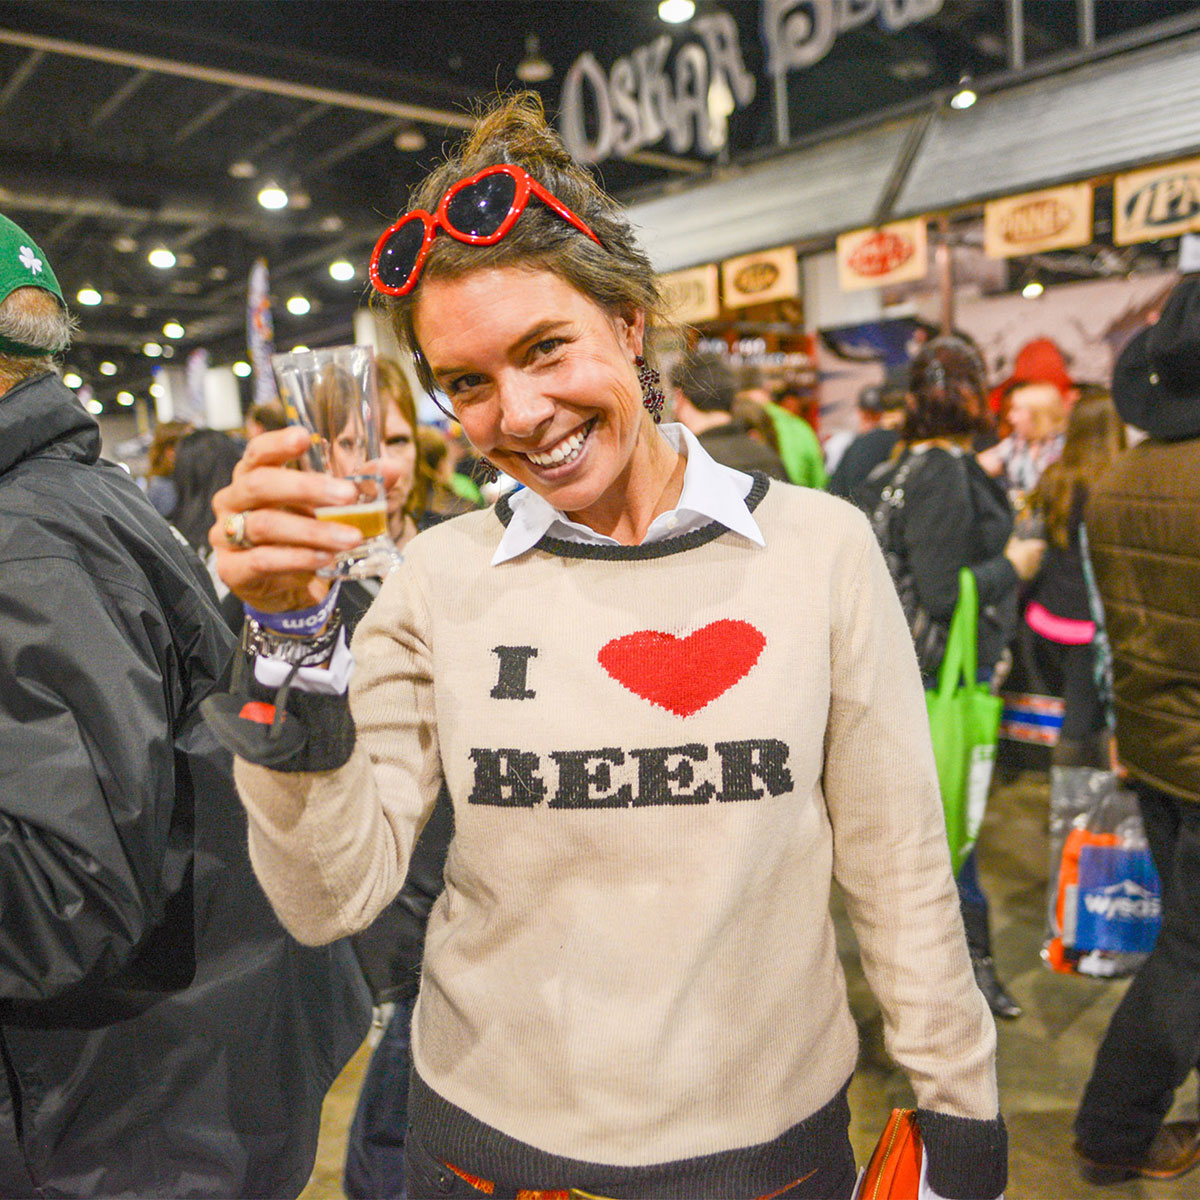 10 Craft Beer Festivals You Don't Want to Miss in 2017